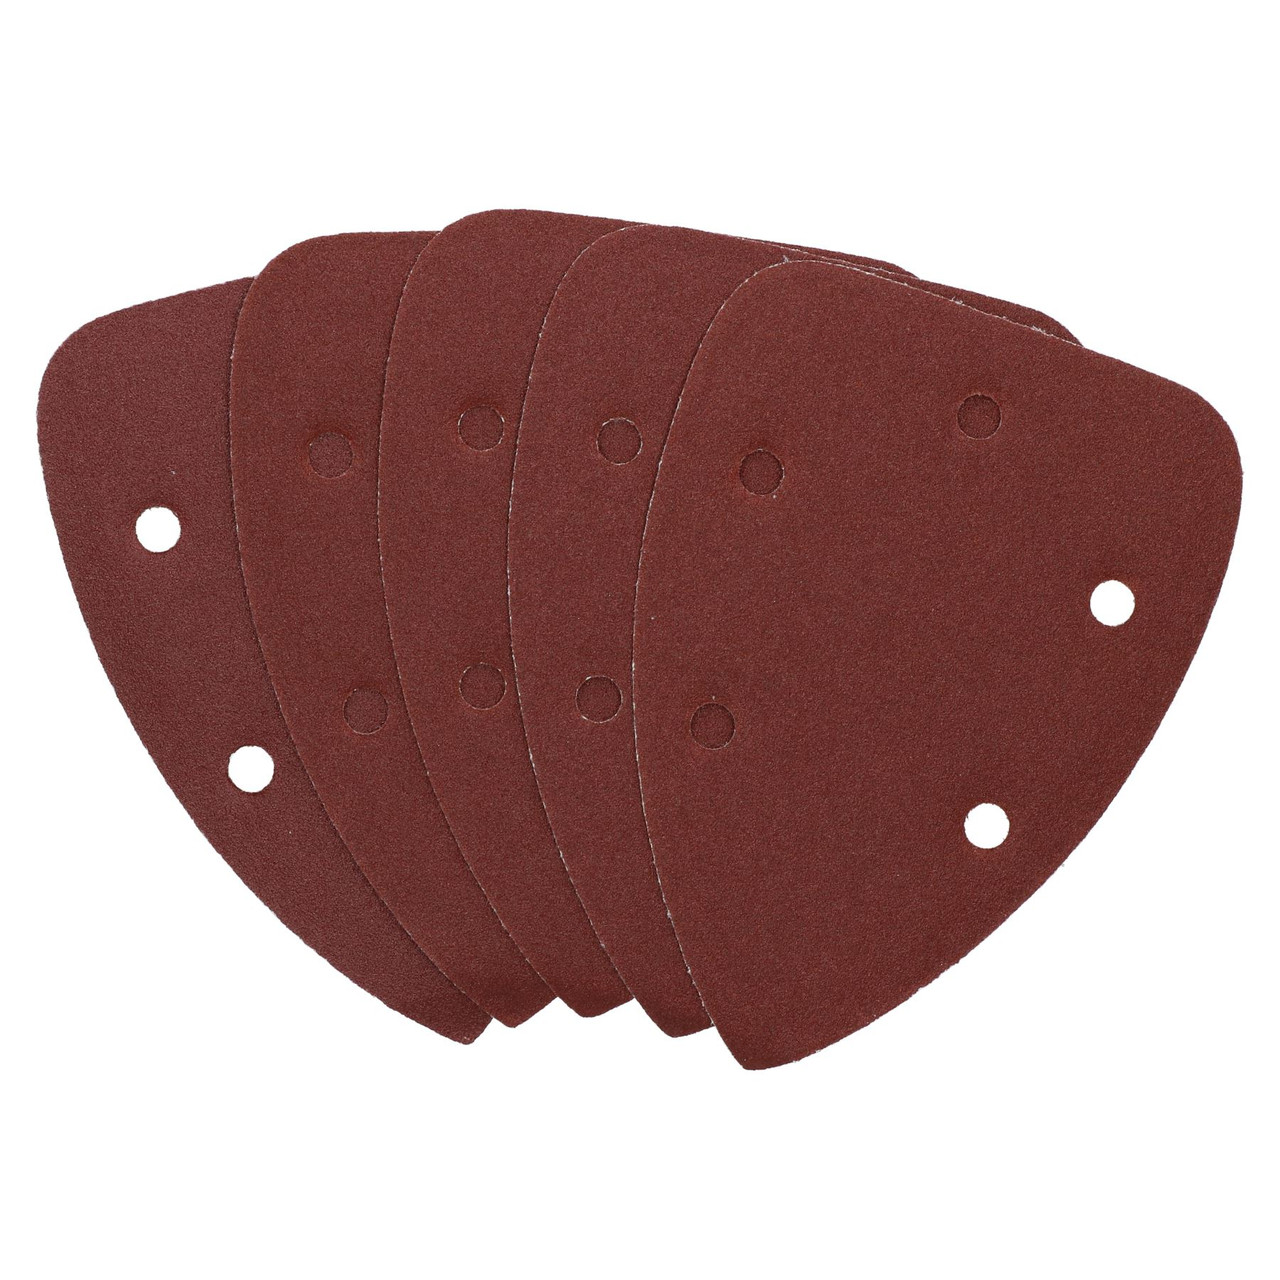 Hook And Loop Detail Sanding Pads Discs 140mm Triangular 60 Grit Coarse 100pc